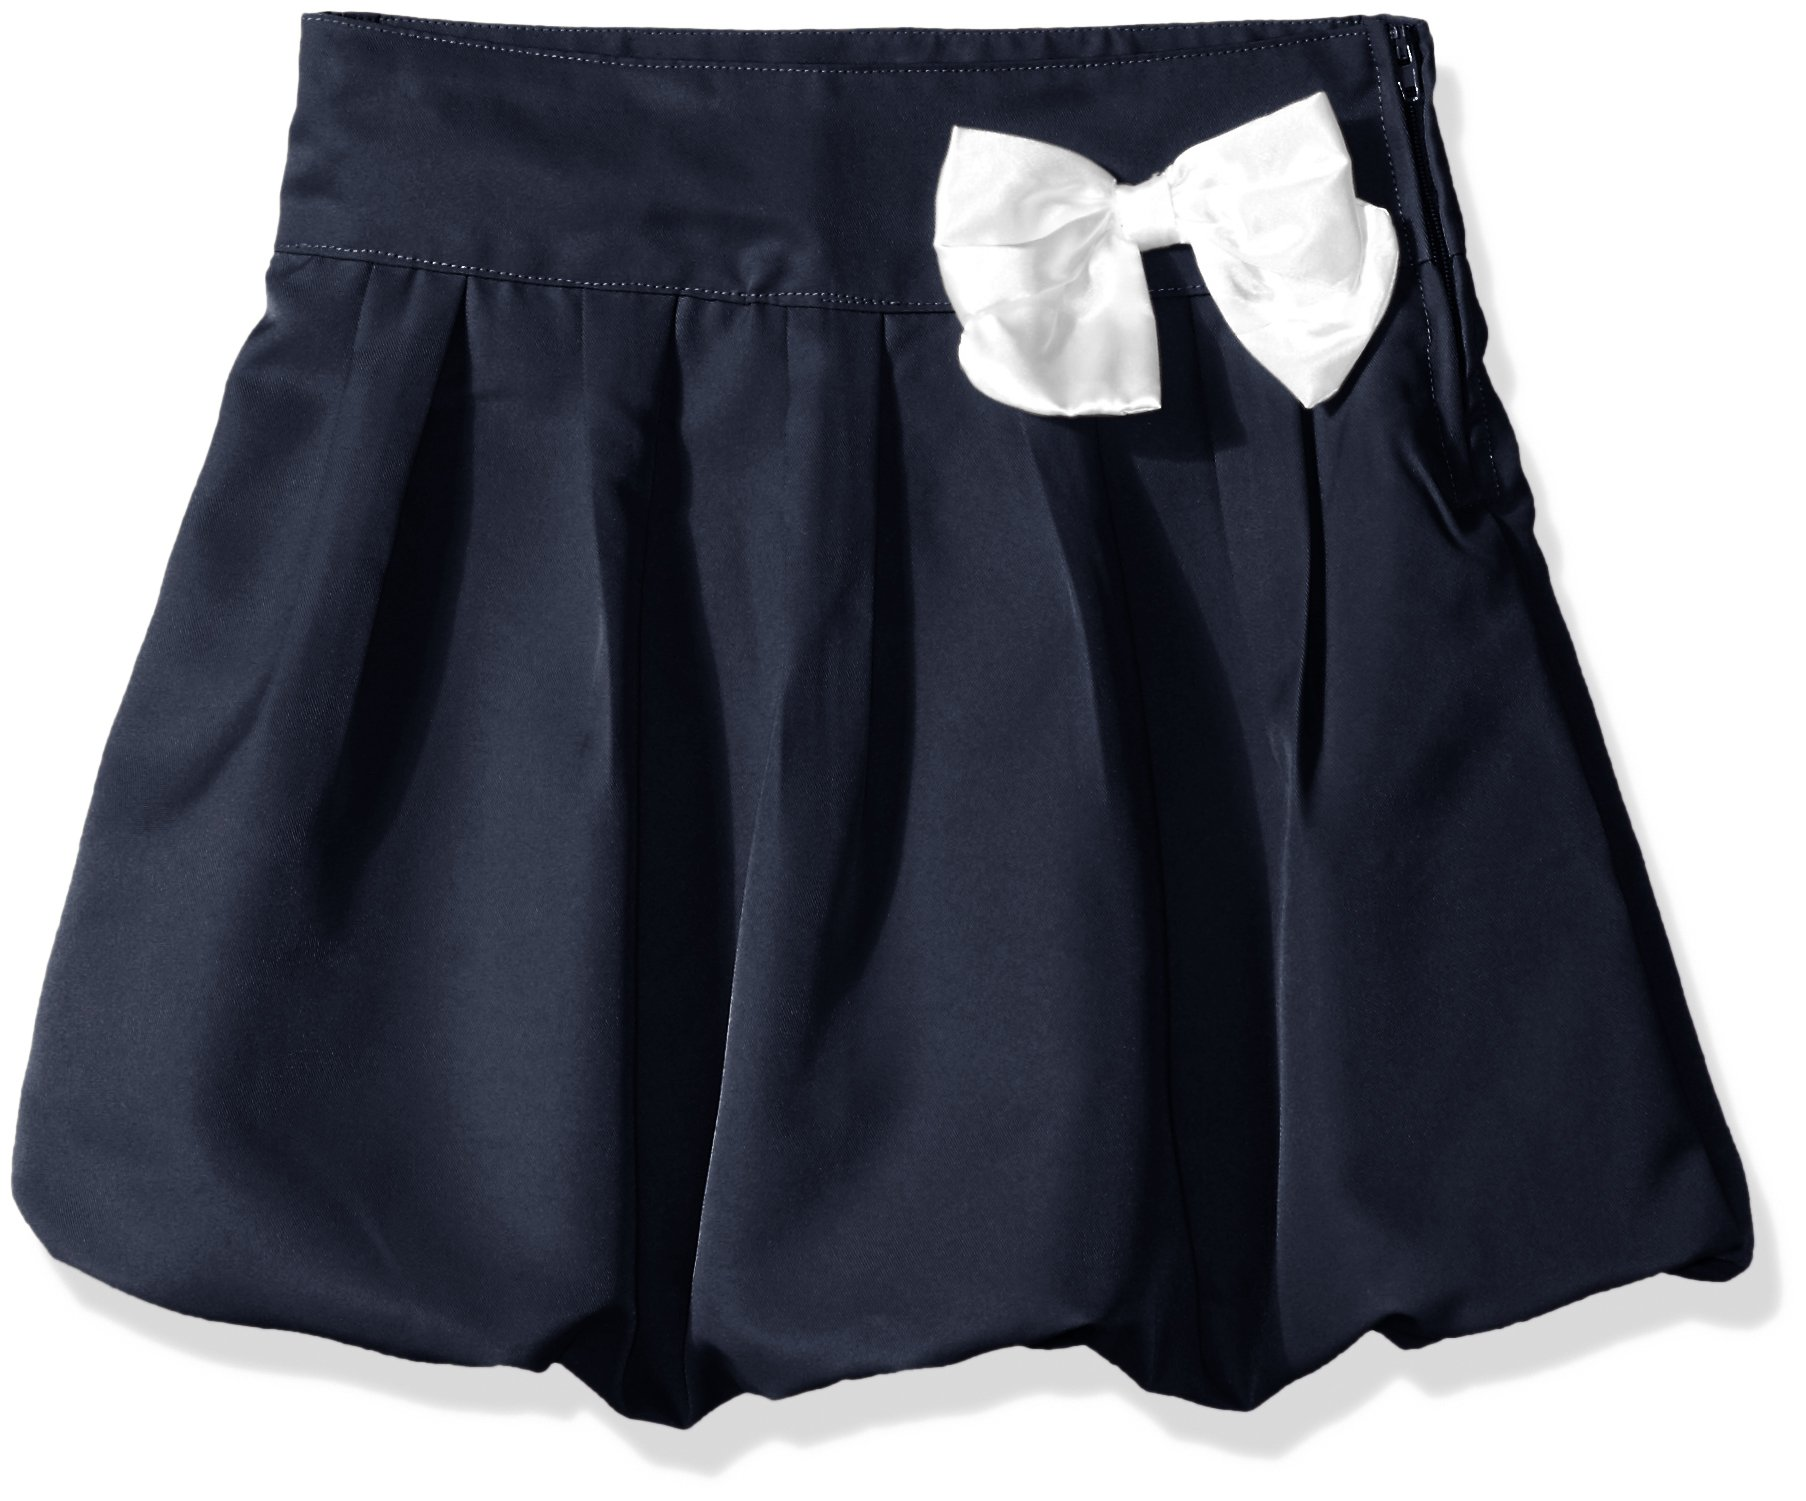 Cherokee Big Girls' Uniform Skirt with Hidden Short, Pleated Navy, 16